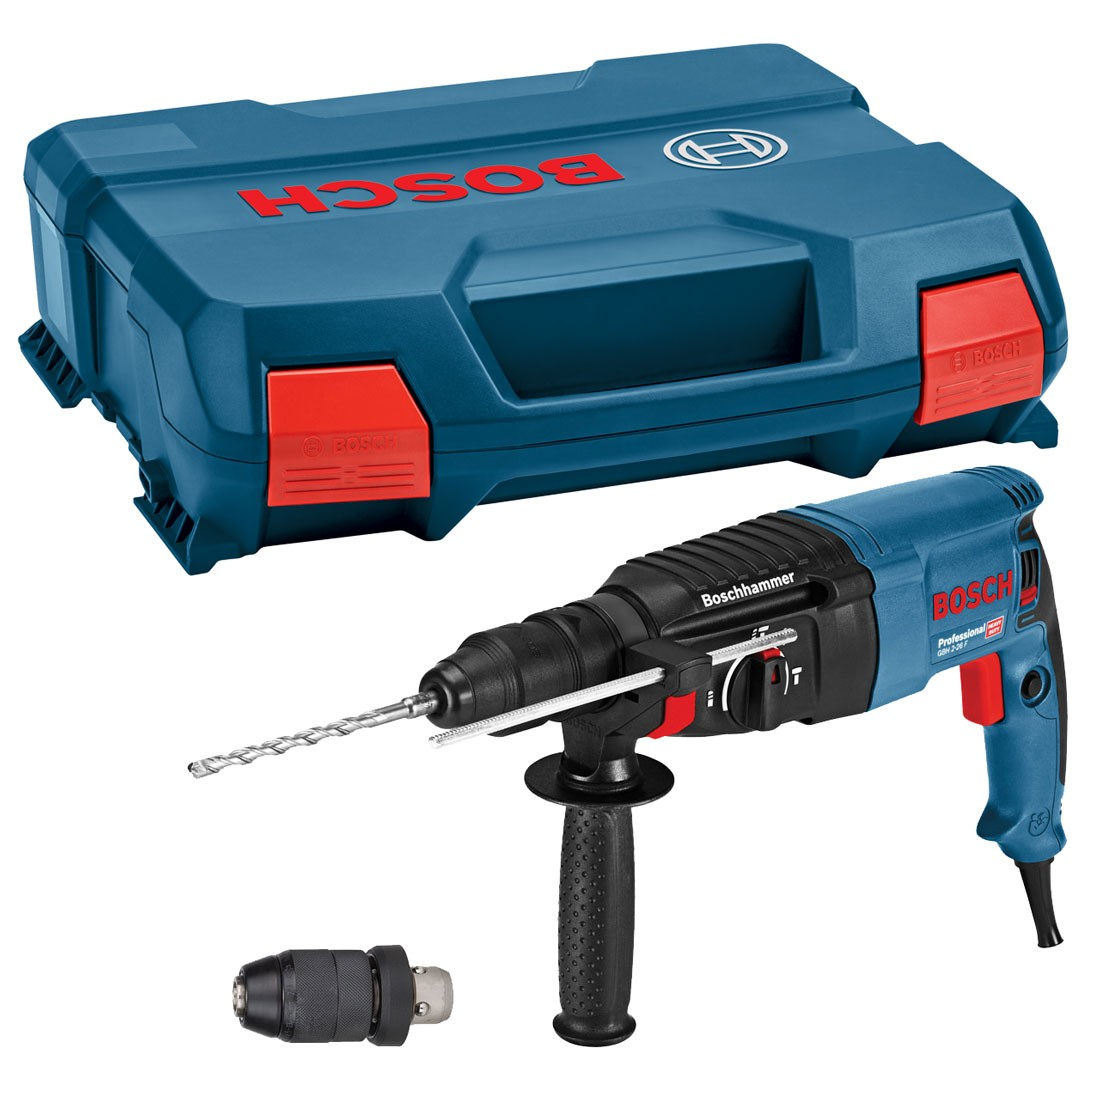 Bosch Gbh 2 26 F Sds Plus Rotary Hammer Drill With Quick